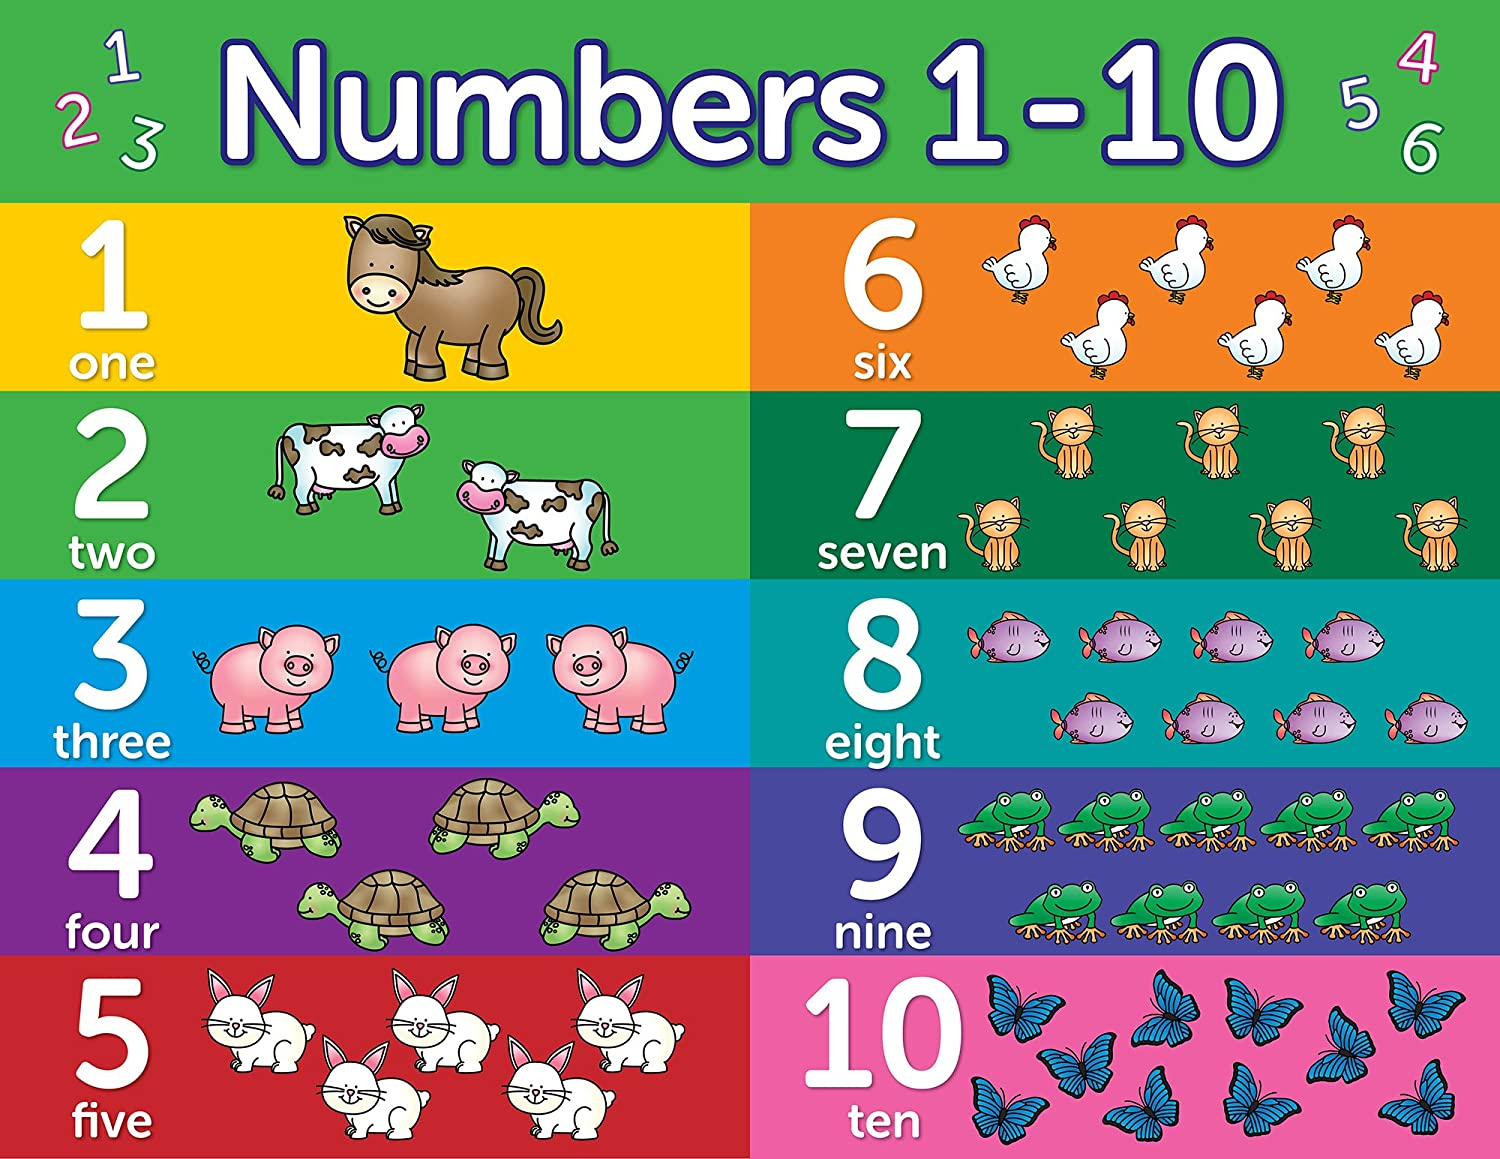 Amazon.com: Numbers 1-10 Poster Chart - LAMINATED 18 x 24 - Double ...